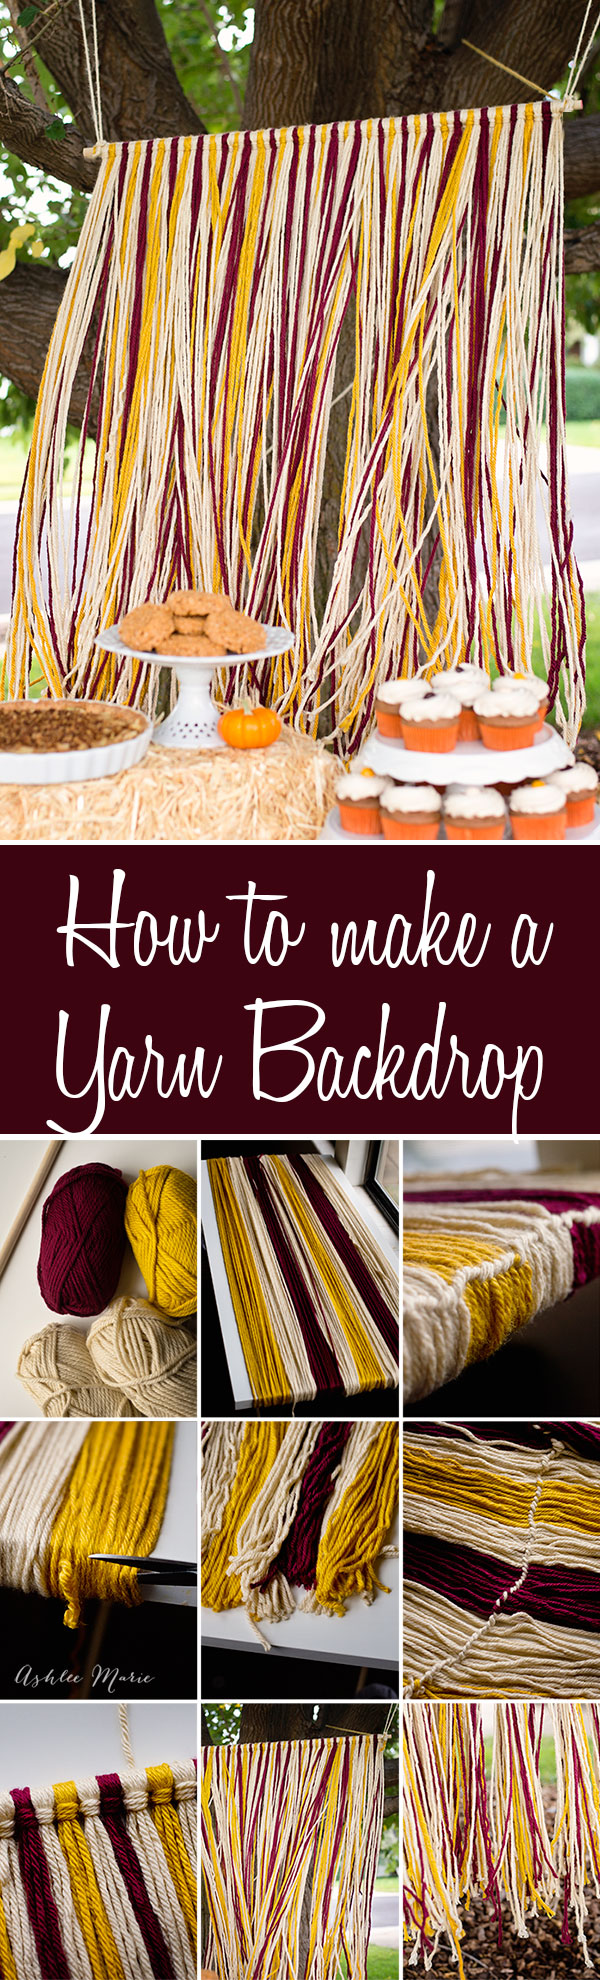 creating a fun and flowy yarn backdrop is easy to do, in one color or multiple colors you just need yarn and a strong dowel rod and you will have a beautiful backdrop in no time